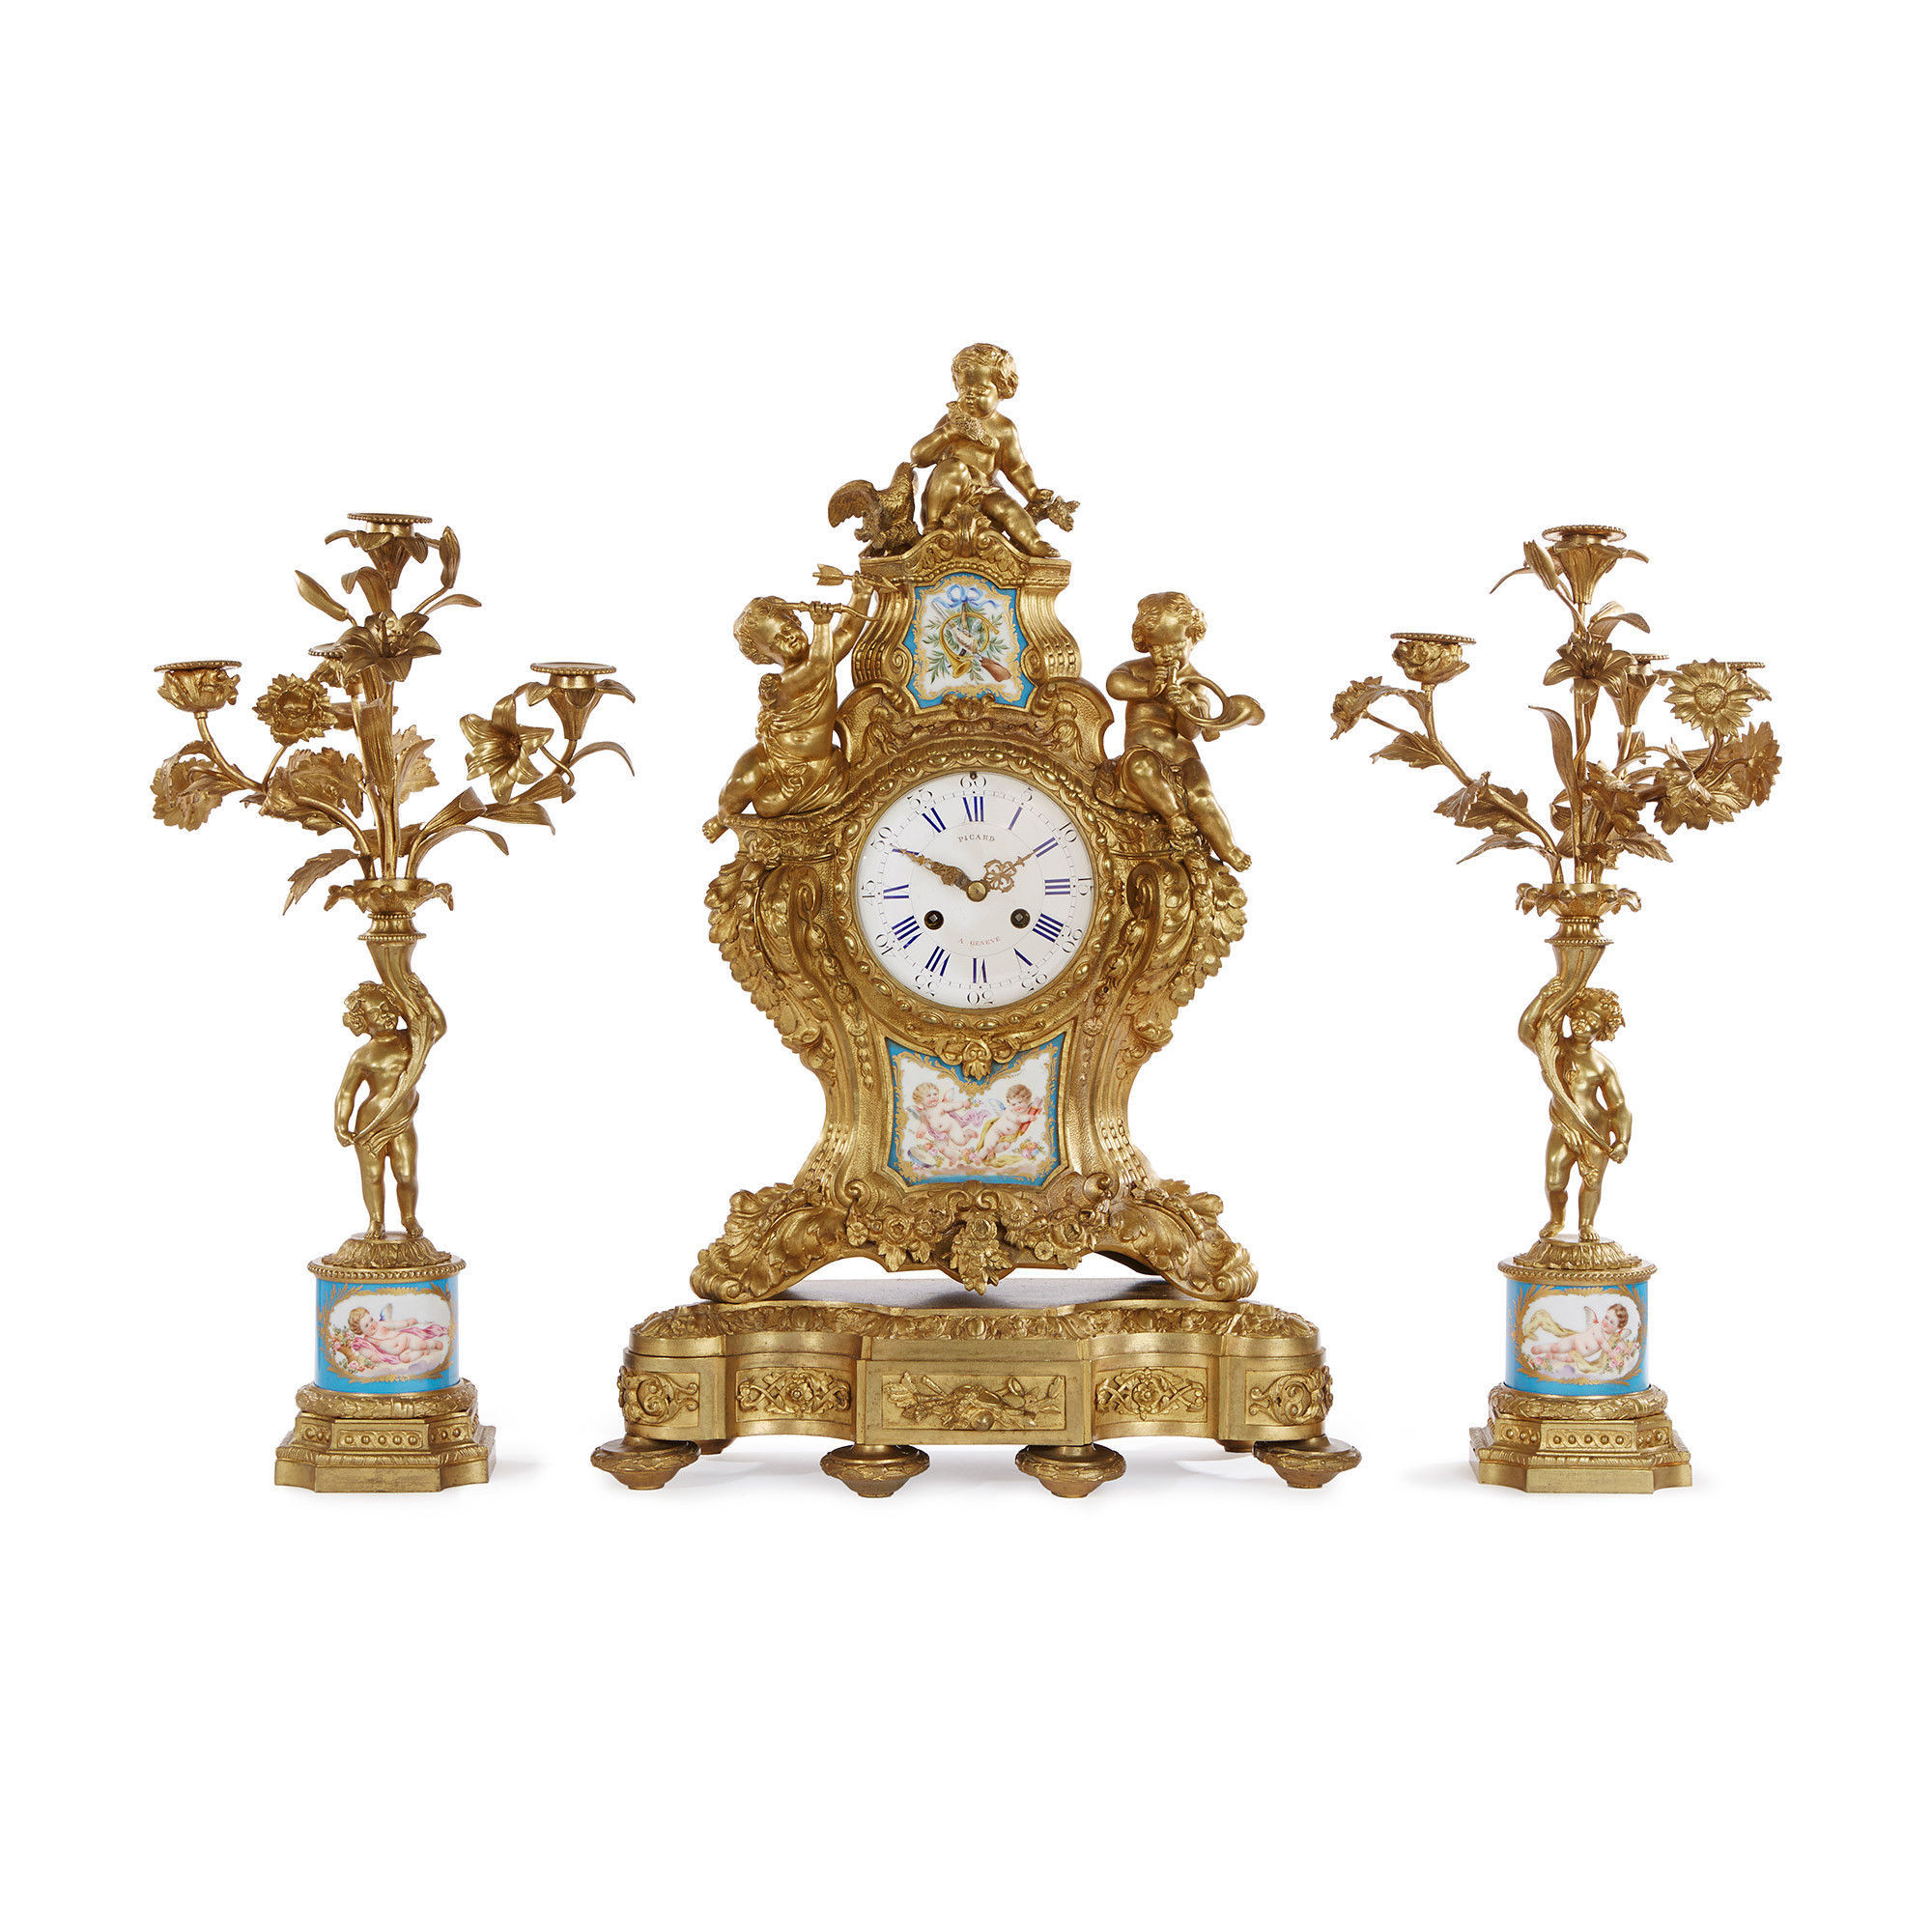 antique french porcelain vases of sa¨vres style porcelain mounted ormolu clock set by picard 19th regarding sa¨vres style porcelain mounted ormolu clock set by picard